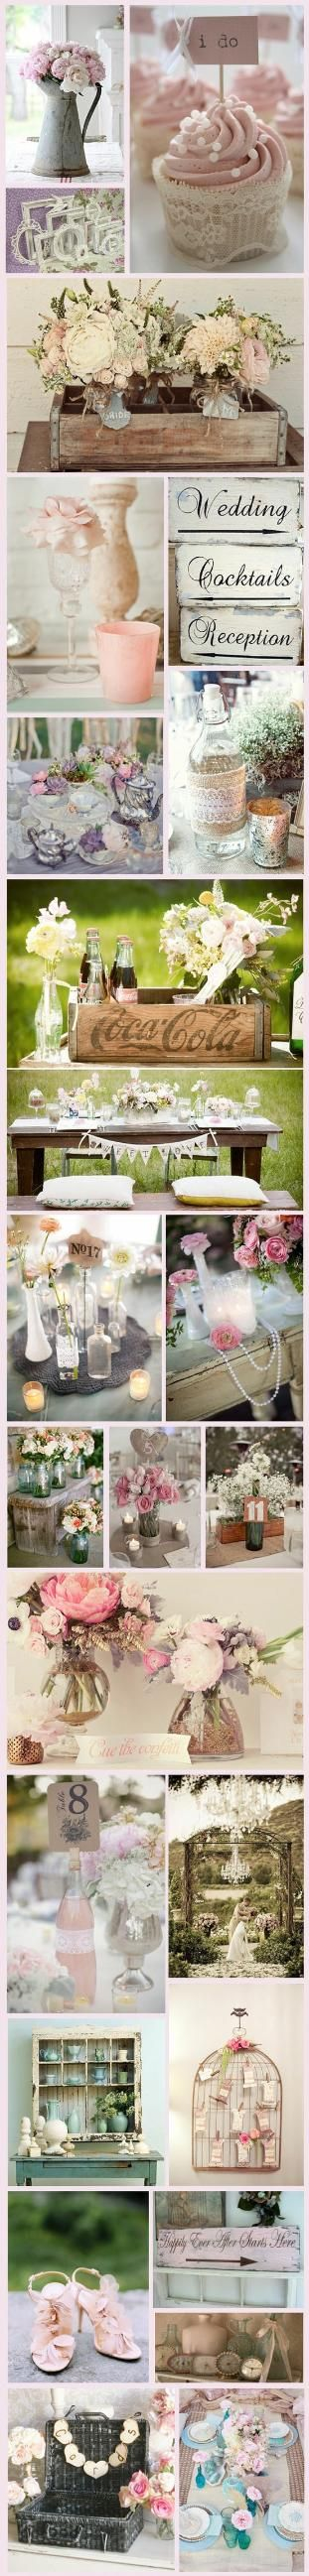 Bridal shower and wedding decor.. Old watering cans,rustic boxes, bunting , flowers mysweeteventhire .com.au